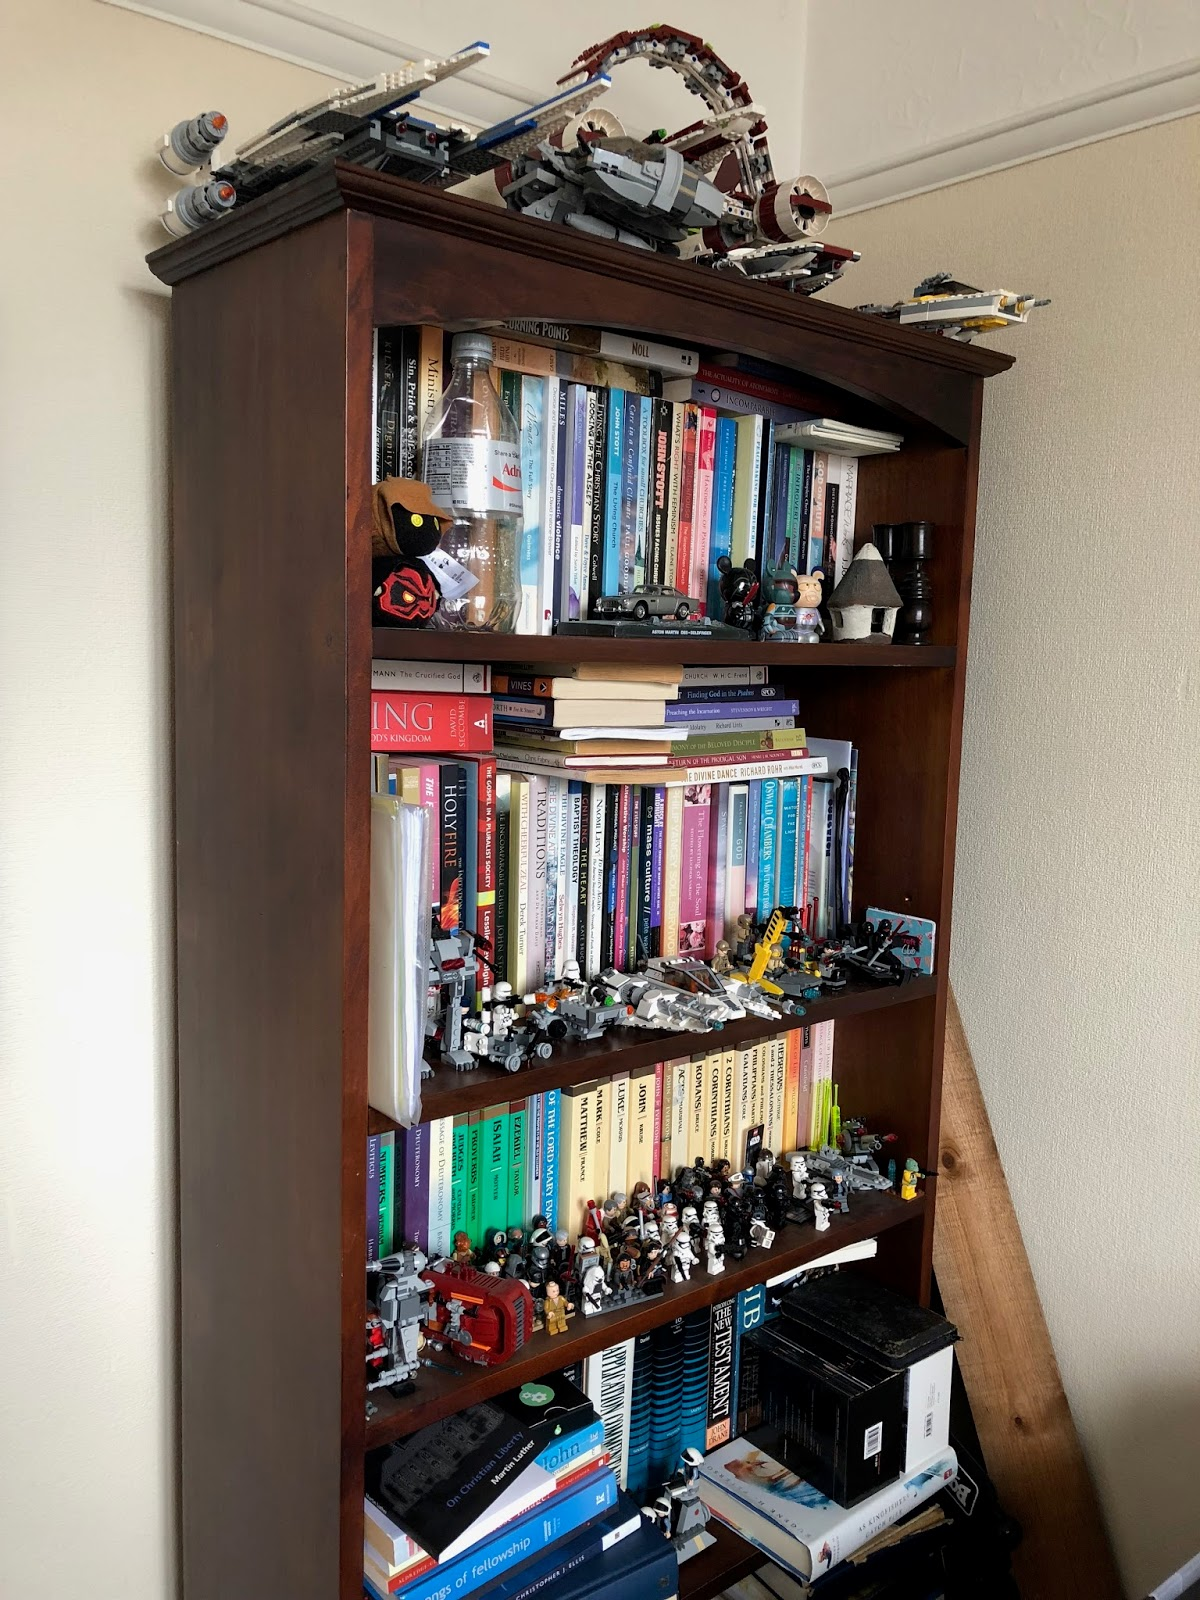 Book case and Star Wars toys